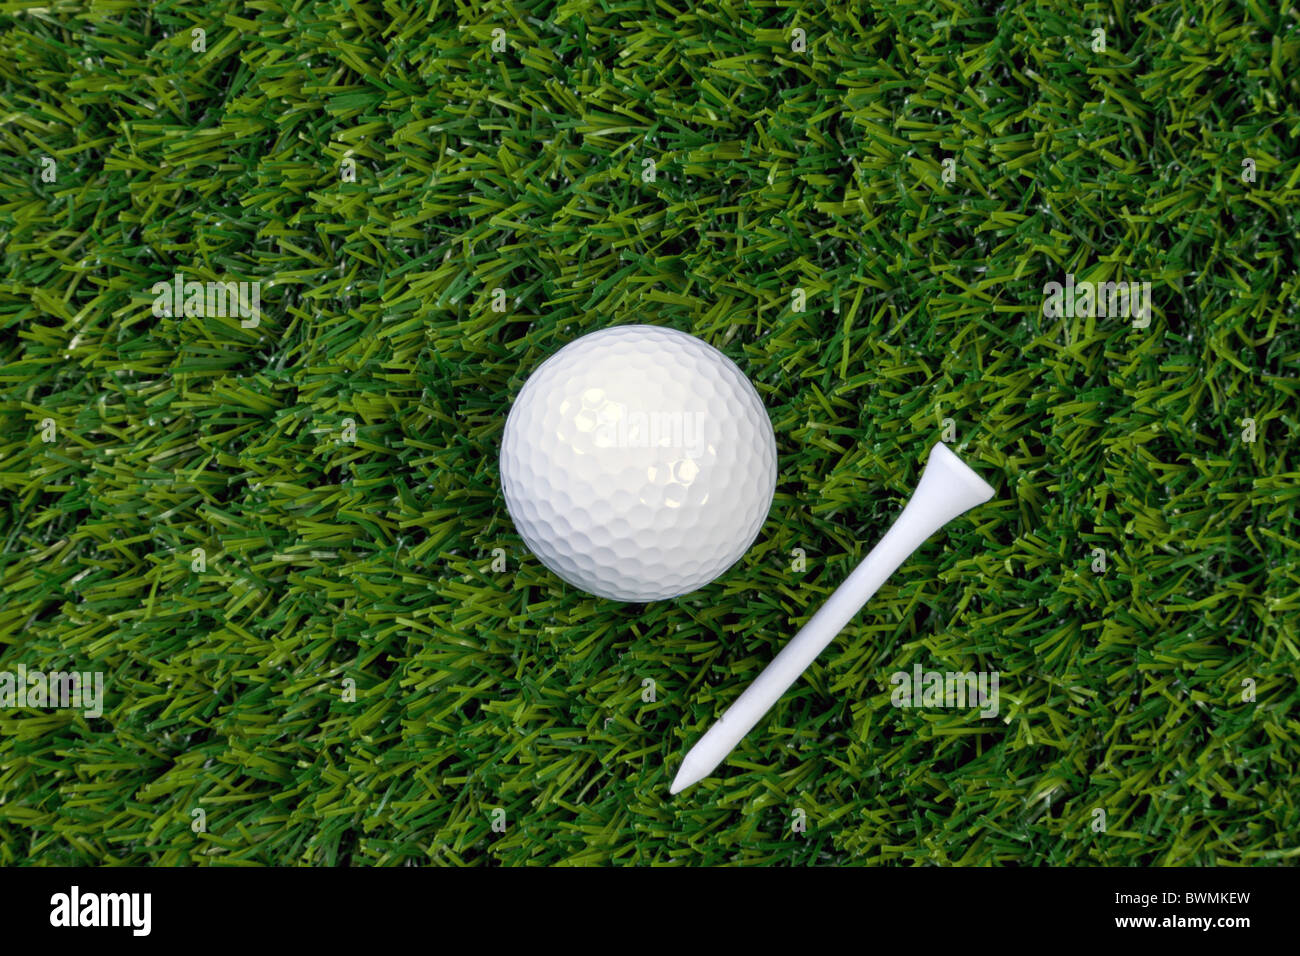 A photo of a golf ball and wooden tee on grass - Stock Image